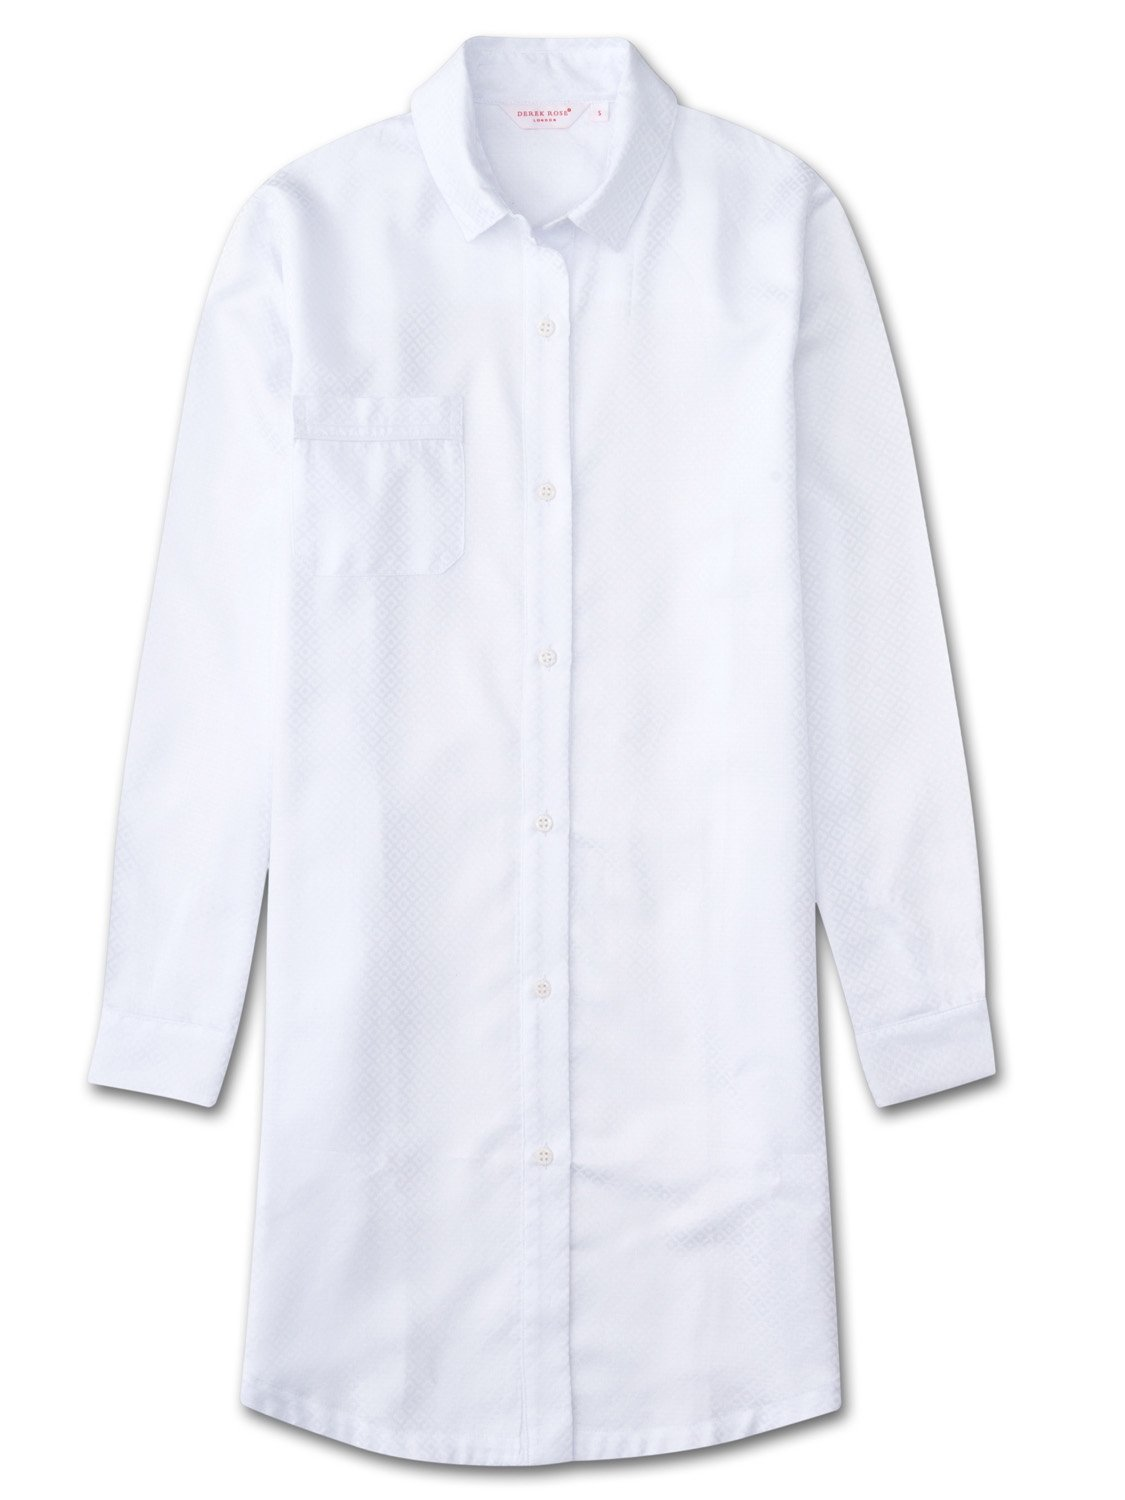 Women's Nightshirt Kate 2 Cotton Jacquard White